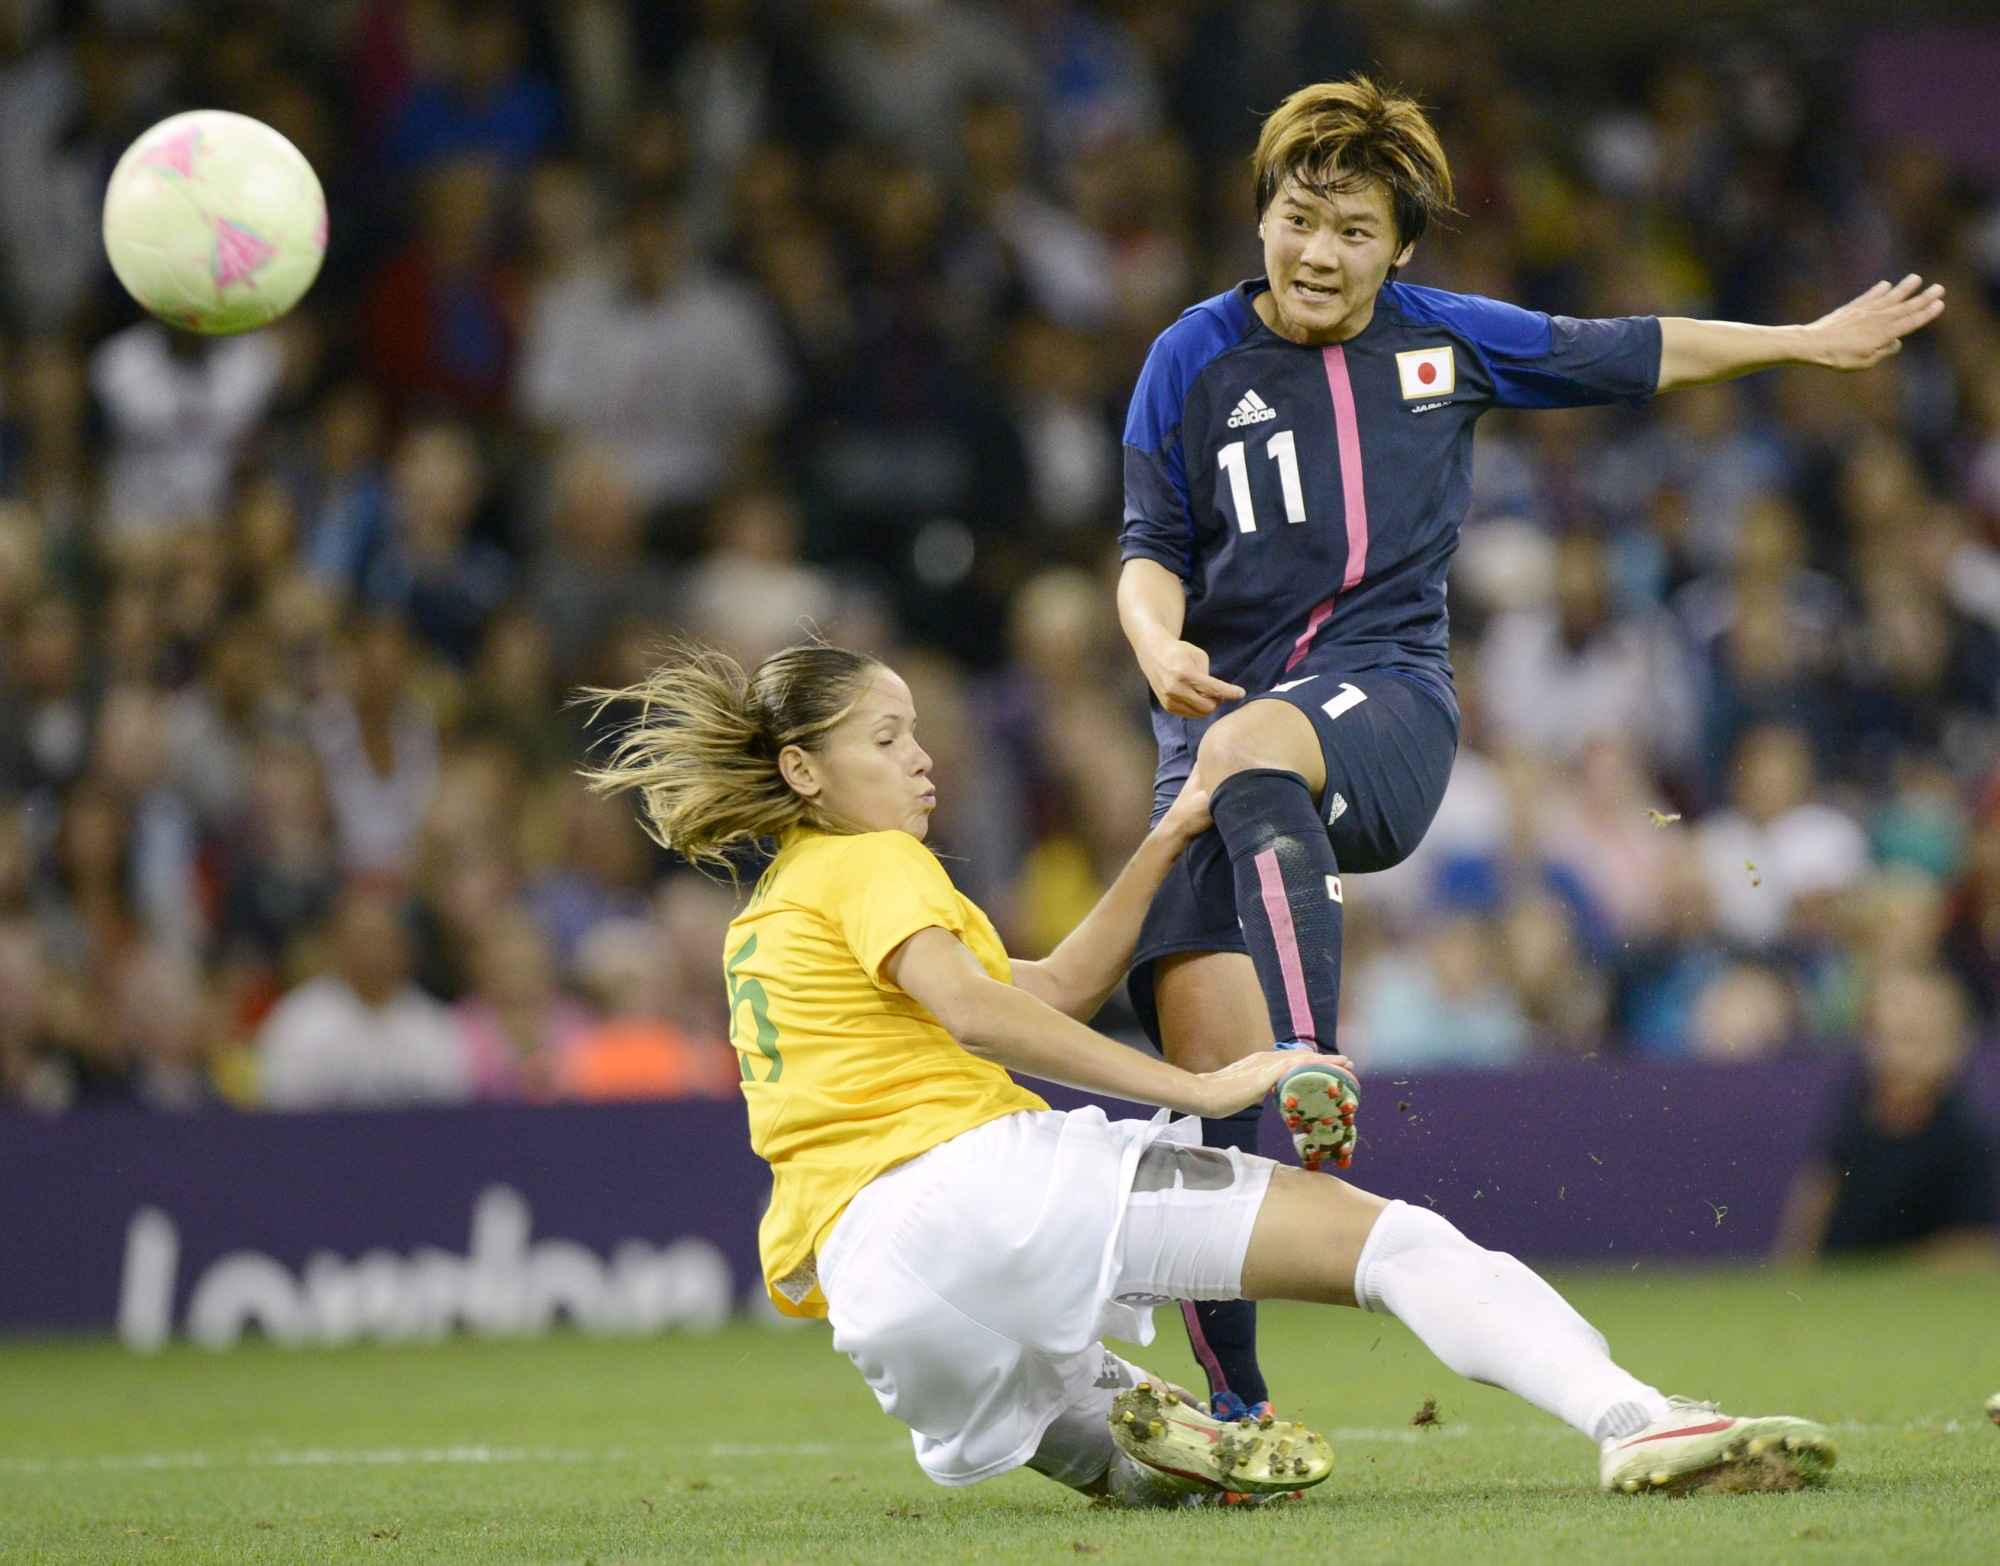 Shinobu Ono (right) scores for Japan against Brazil in the quarterfinals of the 2012 London Olympics women's soccer tournament on Aug. 3, 2012, in Cardiff. | KYODO